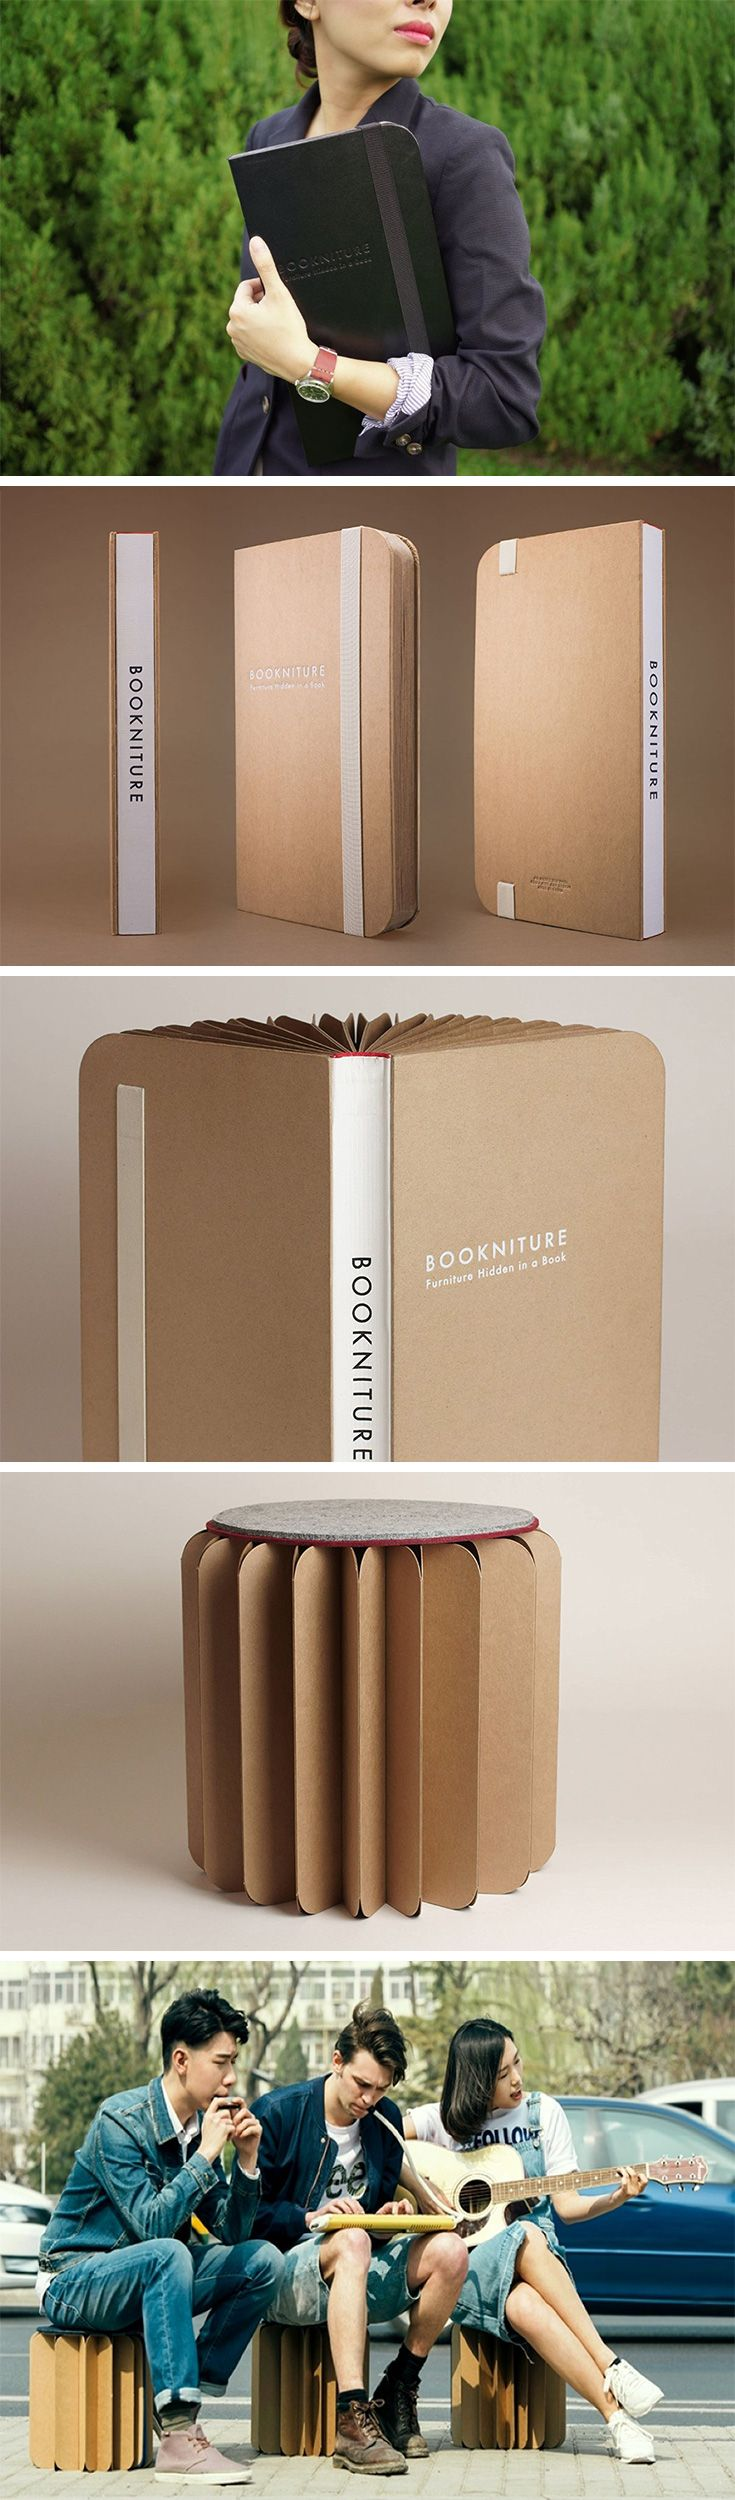 "When I say ""Furniture in a book"", your mind would probably think that the book in question was about furniture. However, Bookniture is way more literal than that! It literally is a book that opens up to become furniture! Relying on folded paper's ability to withstand large amounts of compressive stress against its thickness, the Bookniture literally comes as thick as a coffee-table book and as light as one too. BUY NOW!"